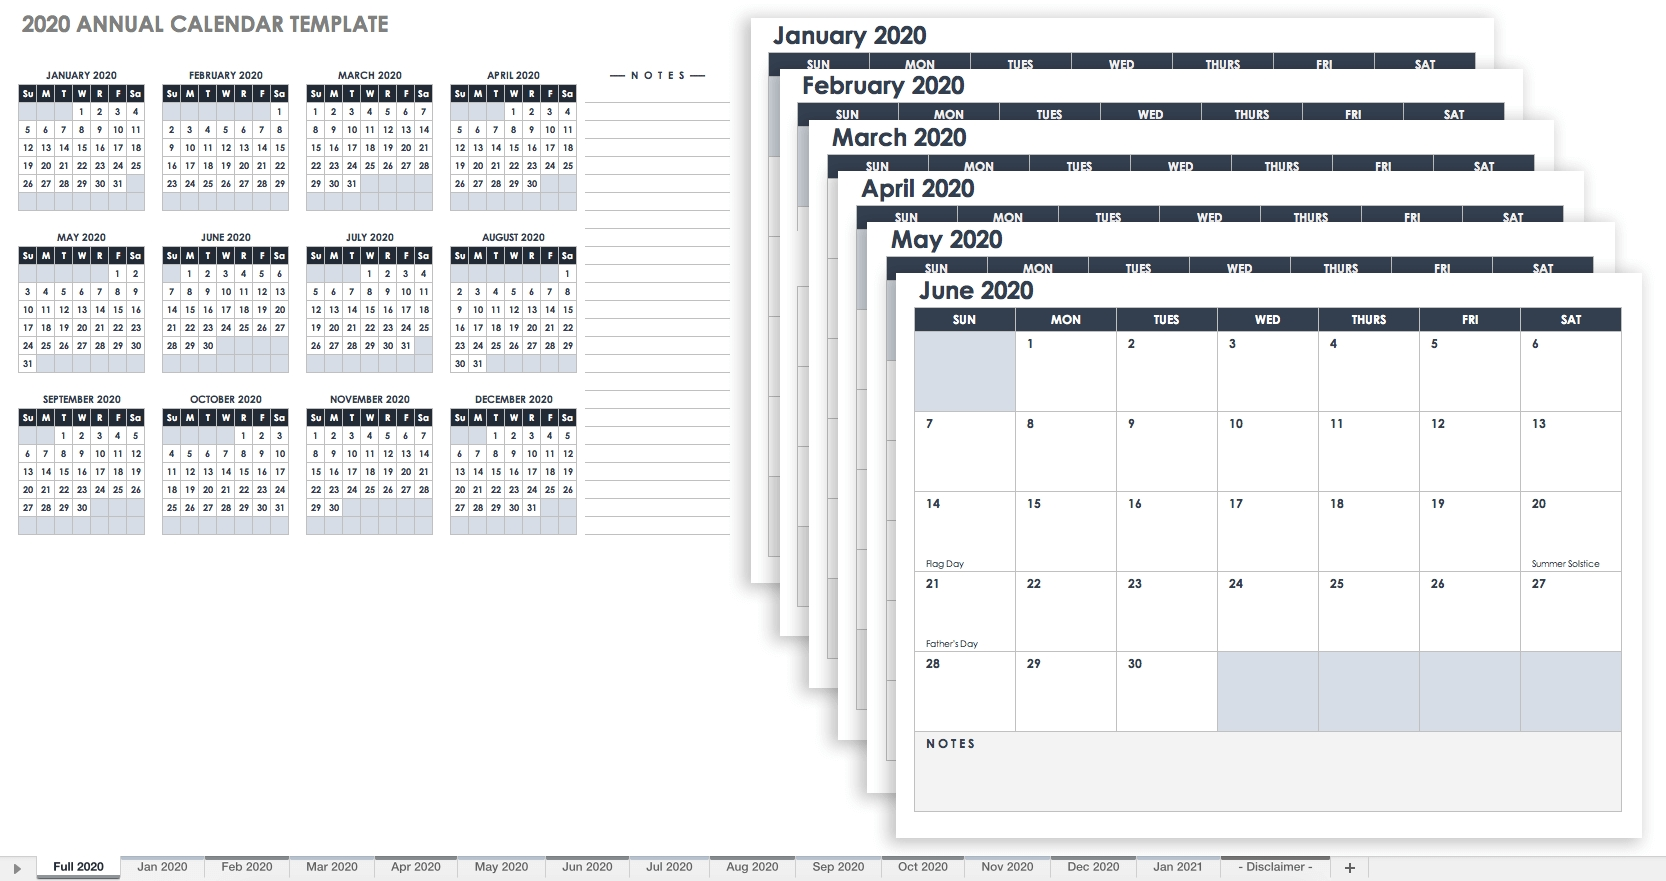 Free, Printable Excel Calendar Templates For 2019 & On | Smartsheet in Calendar For 2019 And 2020 To Edit